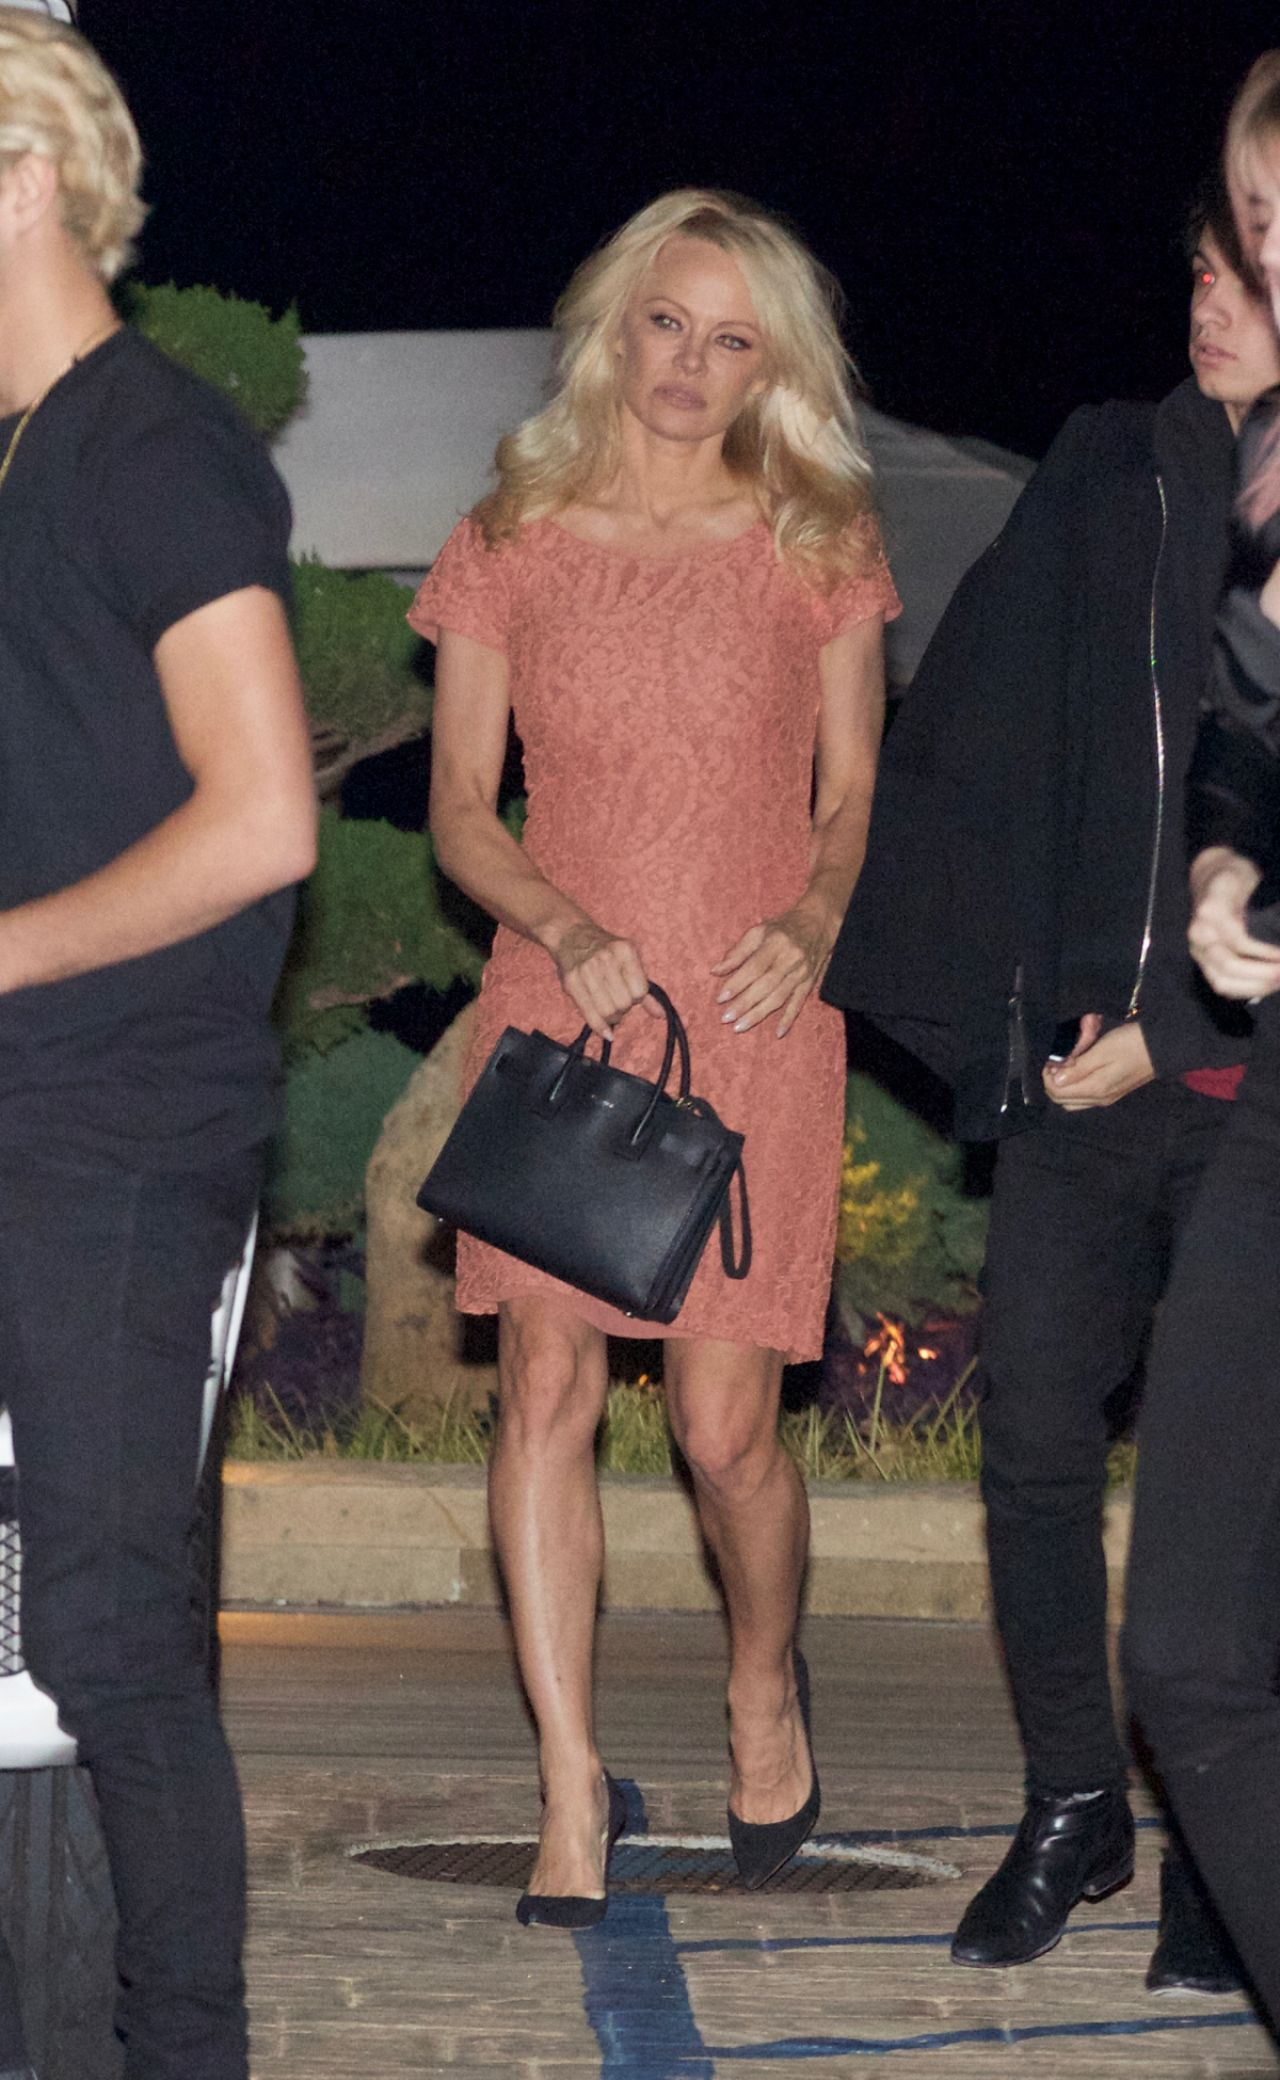 Discussion on this topic: Simran Pareenja 2014, 28-pamela-anderson/